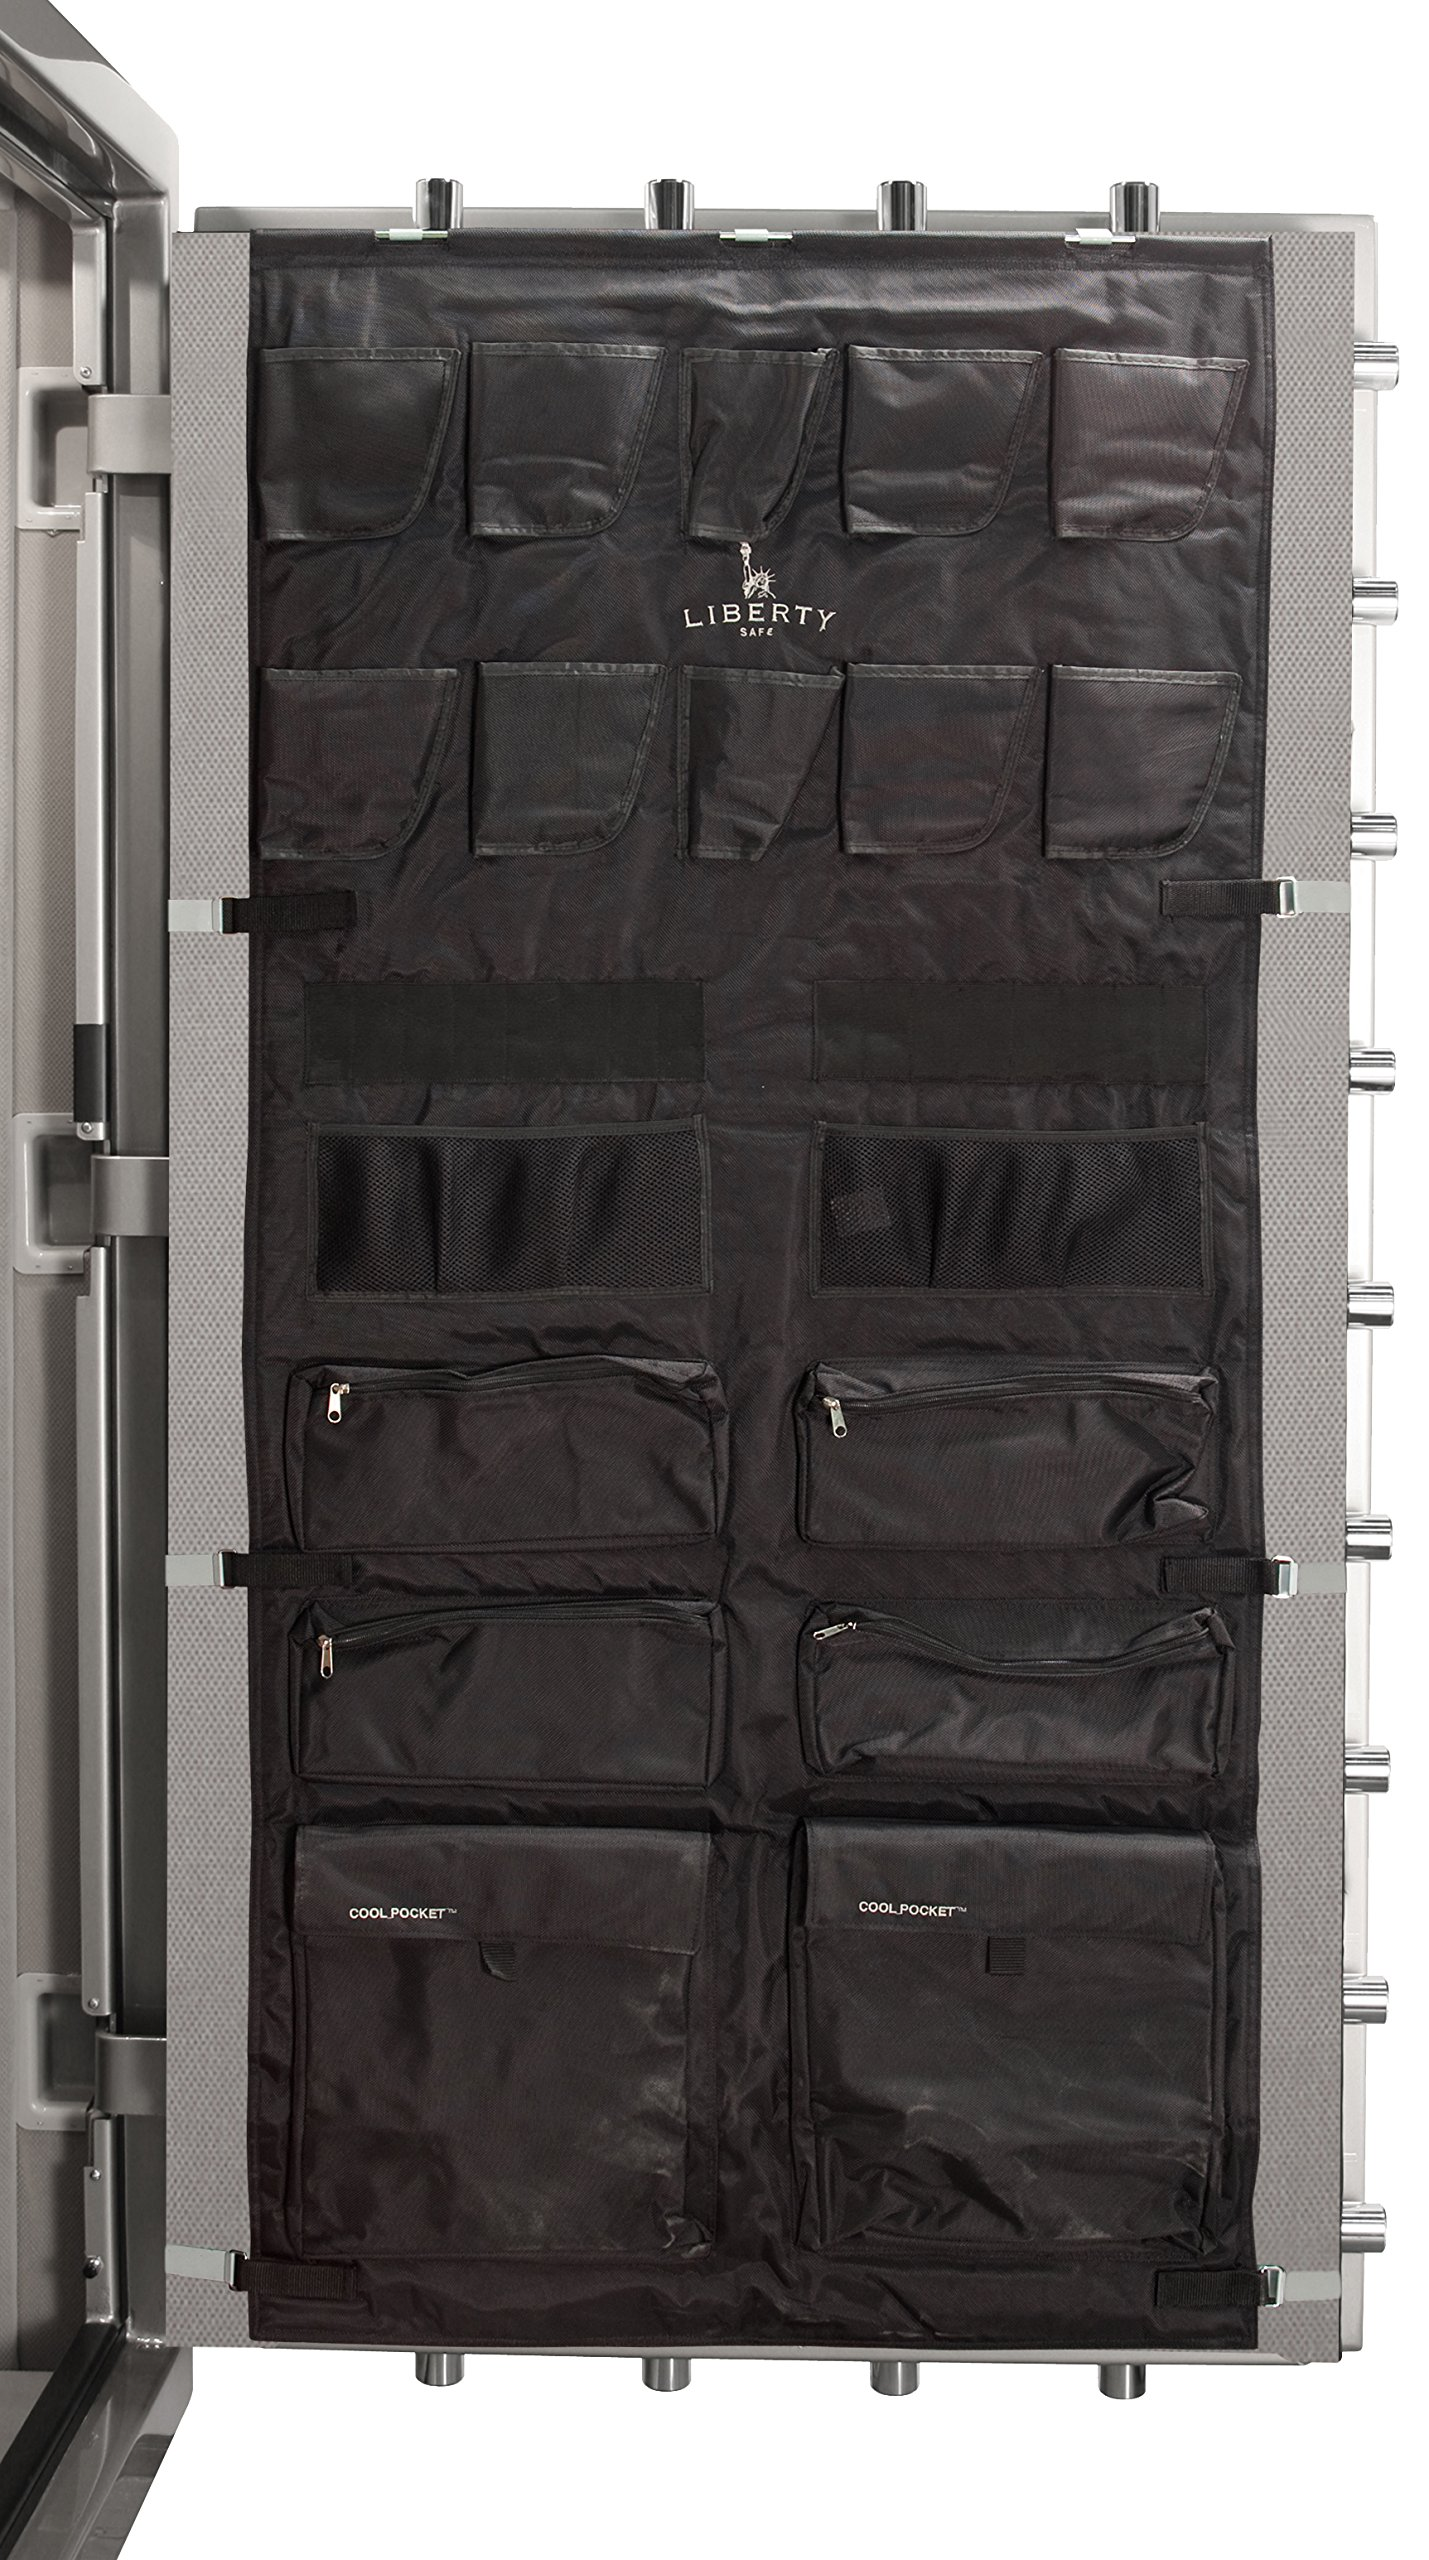 Liberty Gun Safe Door Panel Organizer 10588 Size 50 (29.5 x 62) for 72 Inch Tall Safes by Liberty Safe (Image #1)